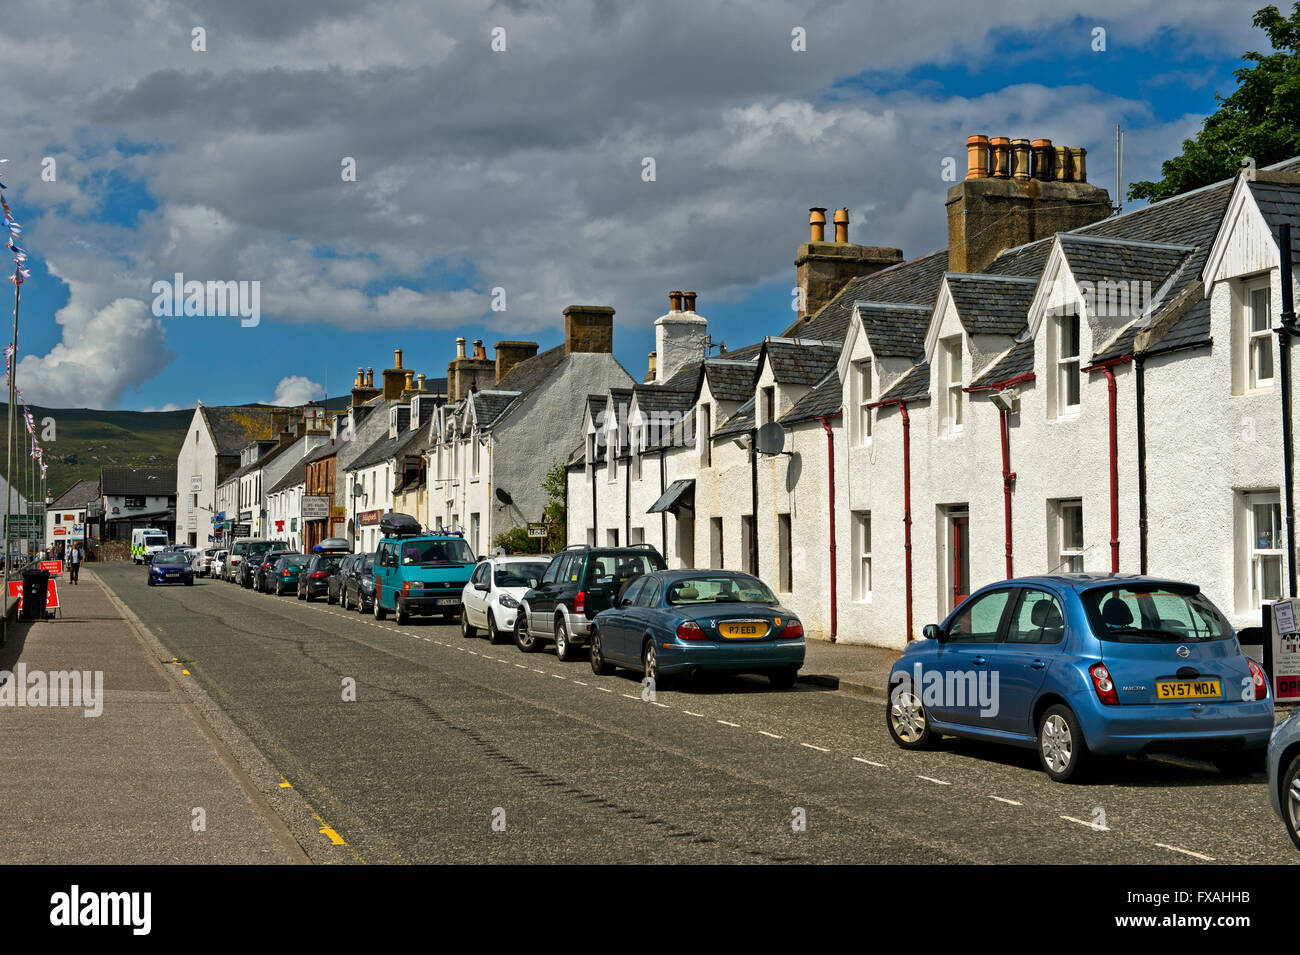 Row of houses in Shore Street, Ullapool, Ross-shire, Scotland, United Kingdom - Stock Image